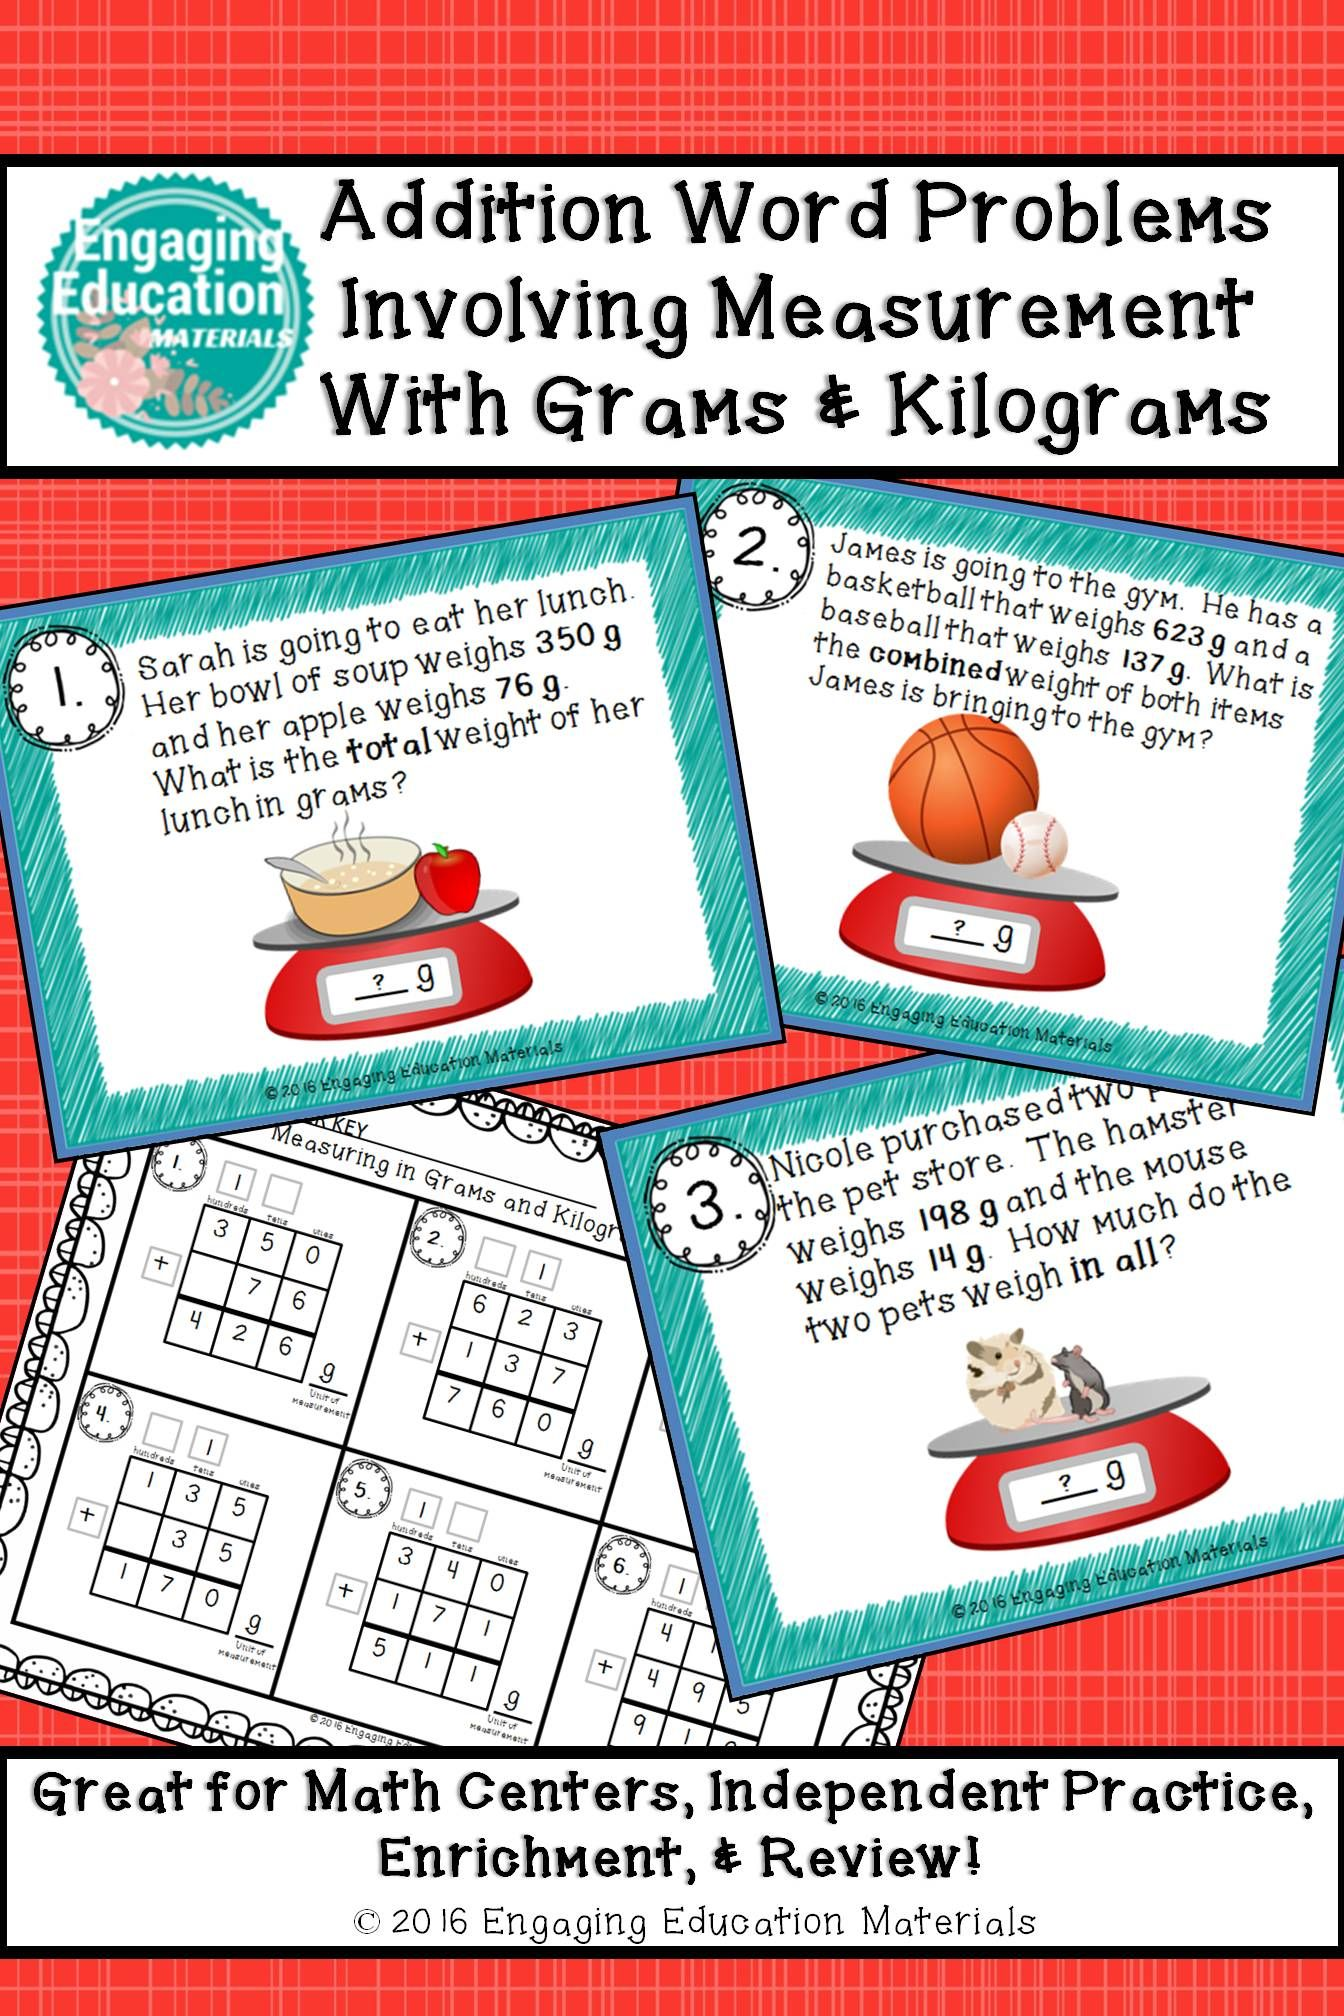 Addition Word Problems Involving Measurement With Grams & Kilograms ...